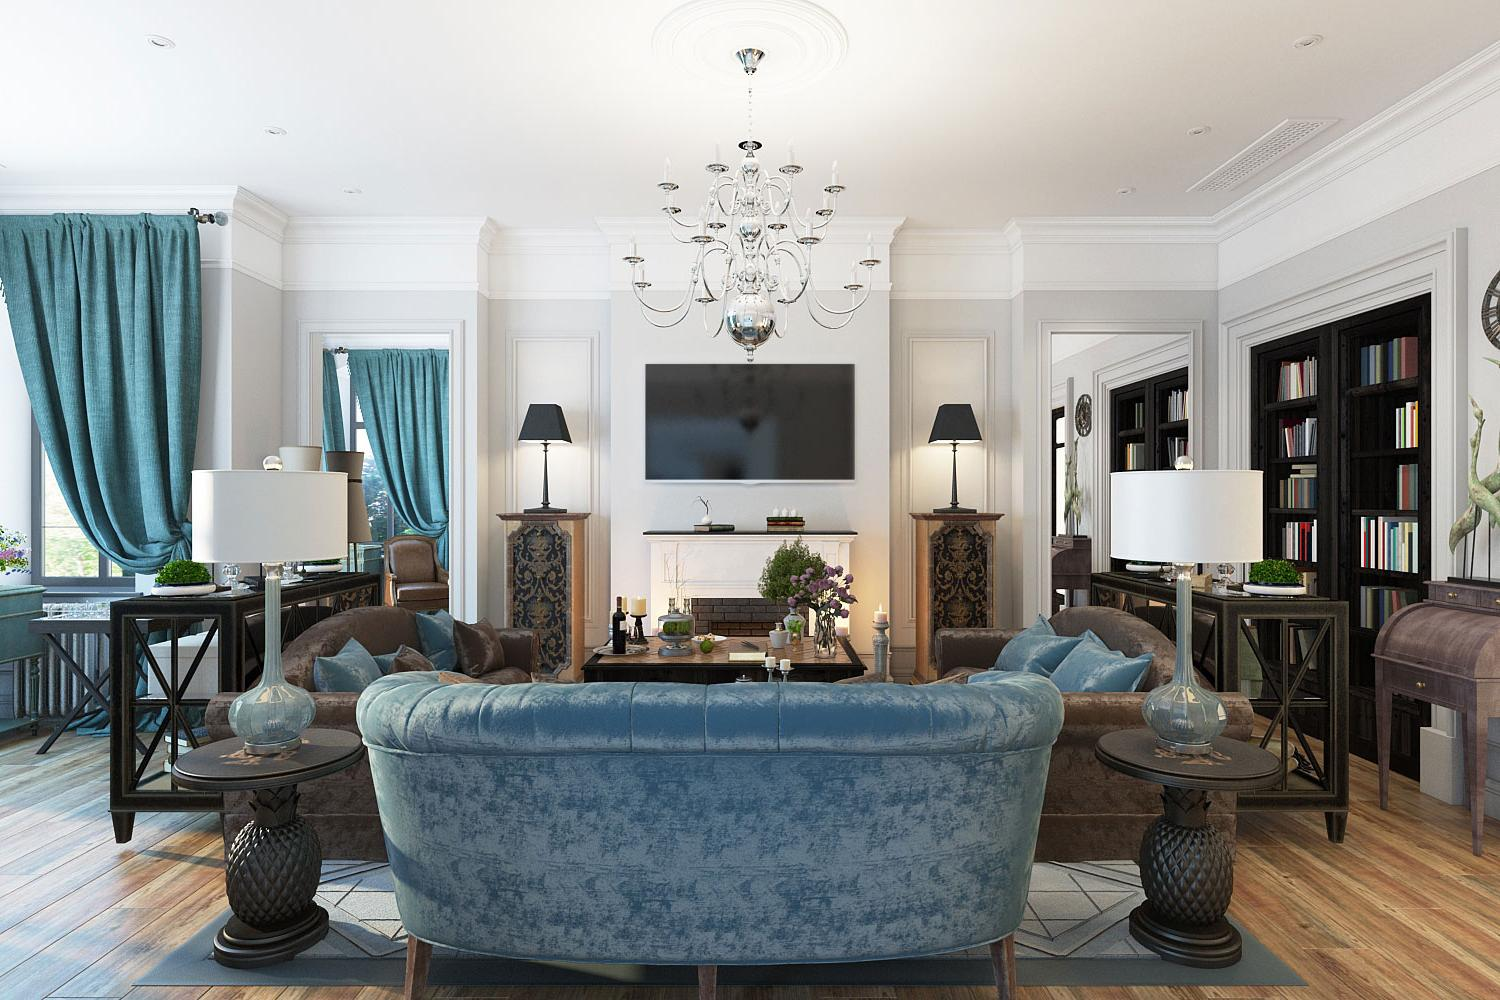 Traditional Interior Design Ideas: Lightweight Classics. Spectacular turquoise velours sofa at the forefront